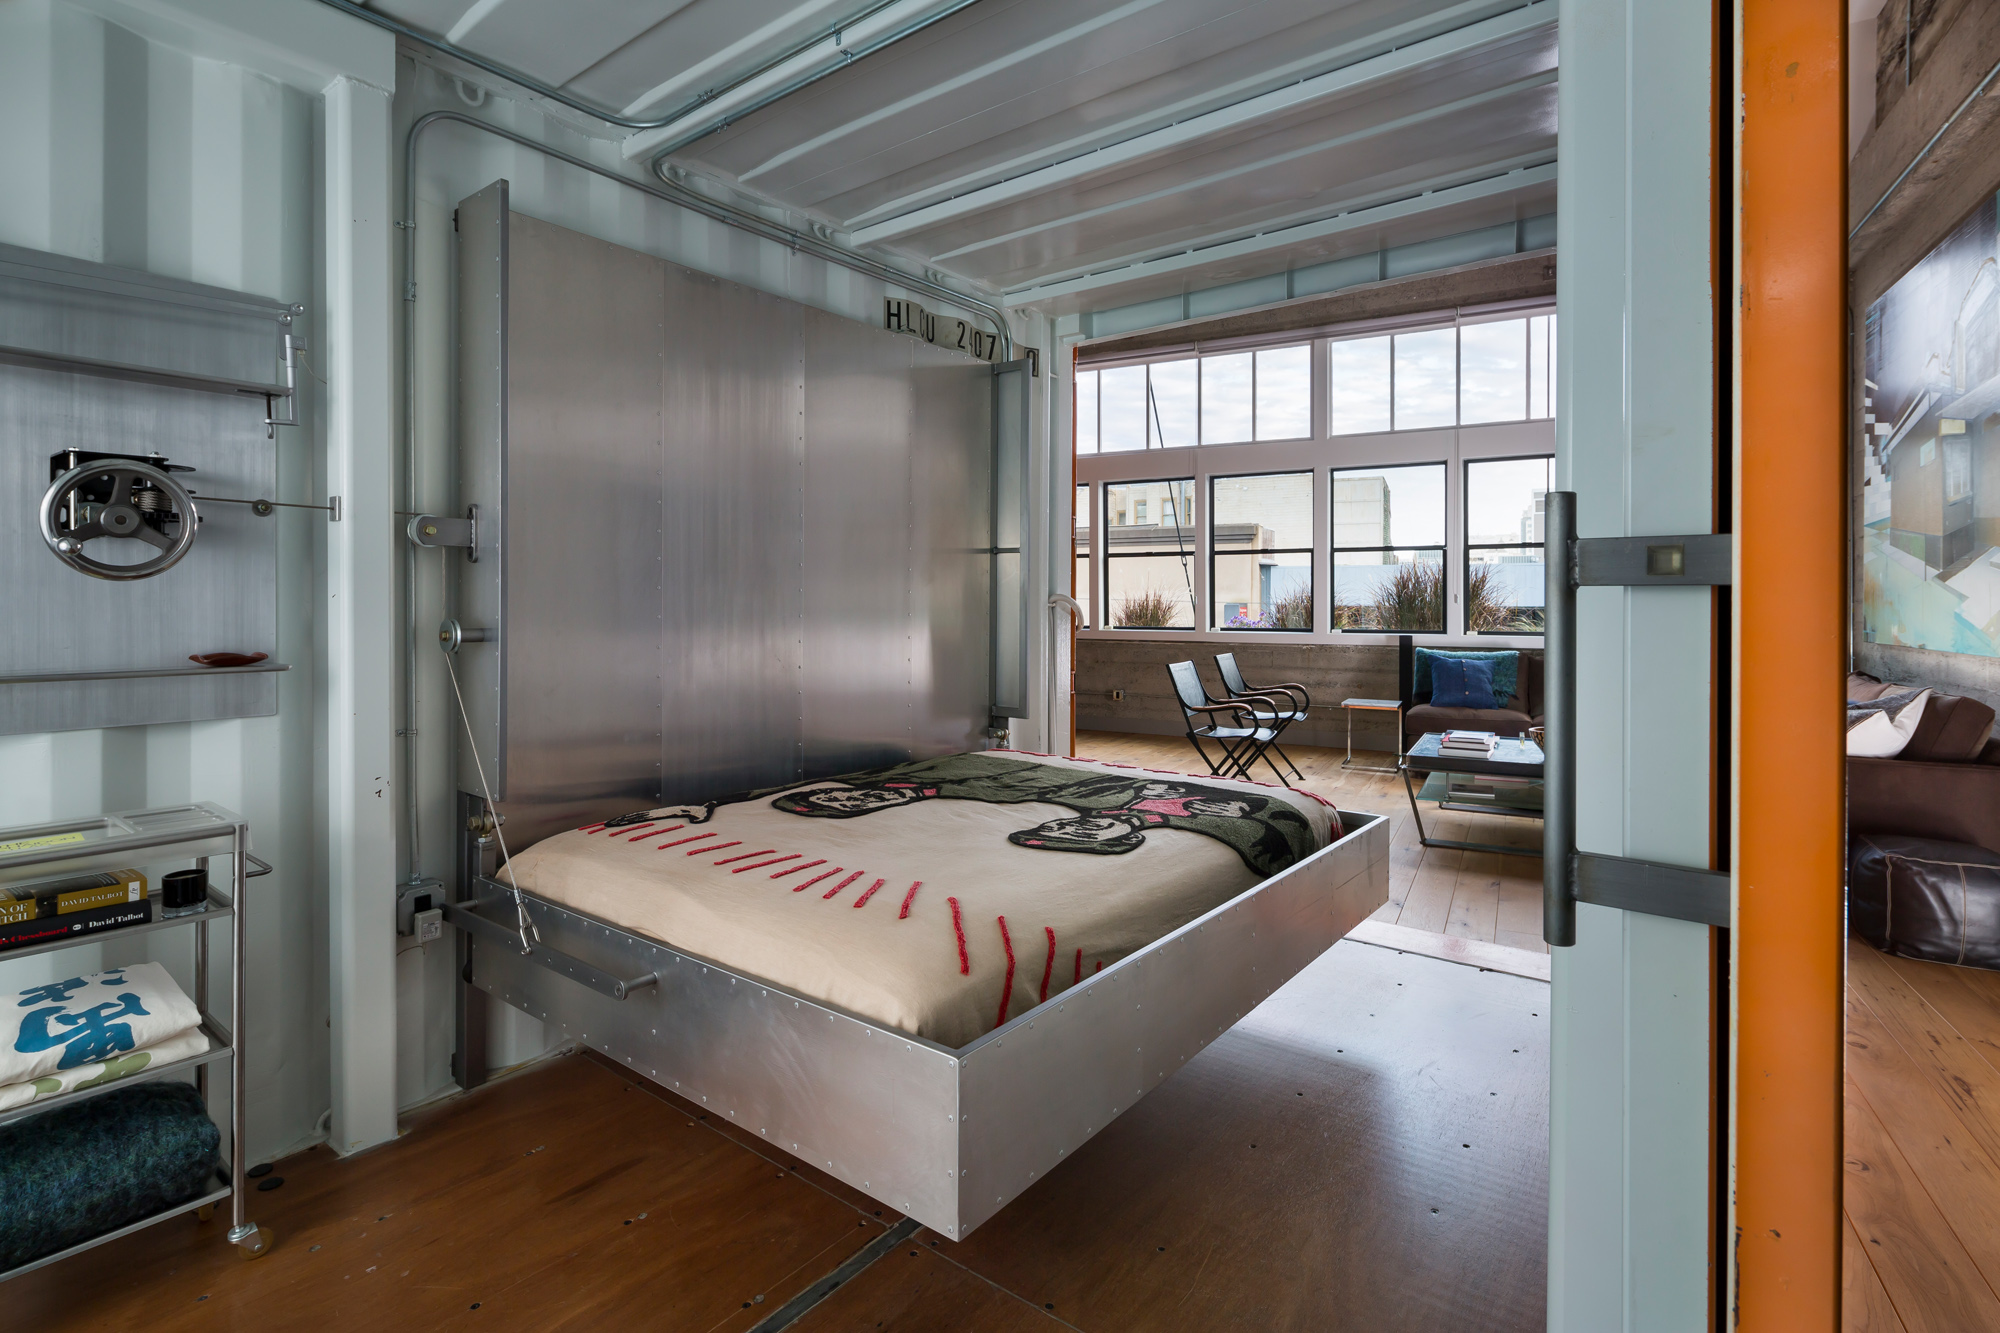 shipping container home in pacific heights asks $4.9 million